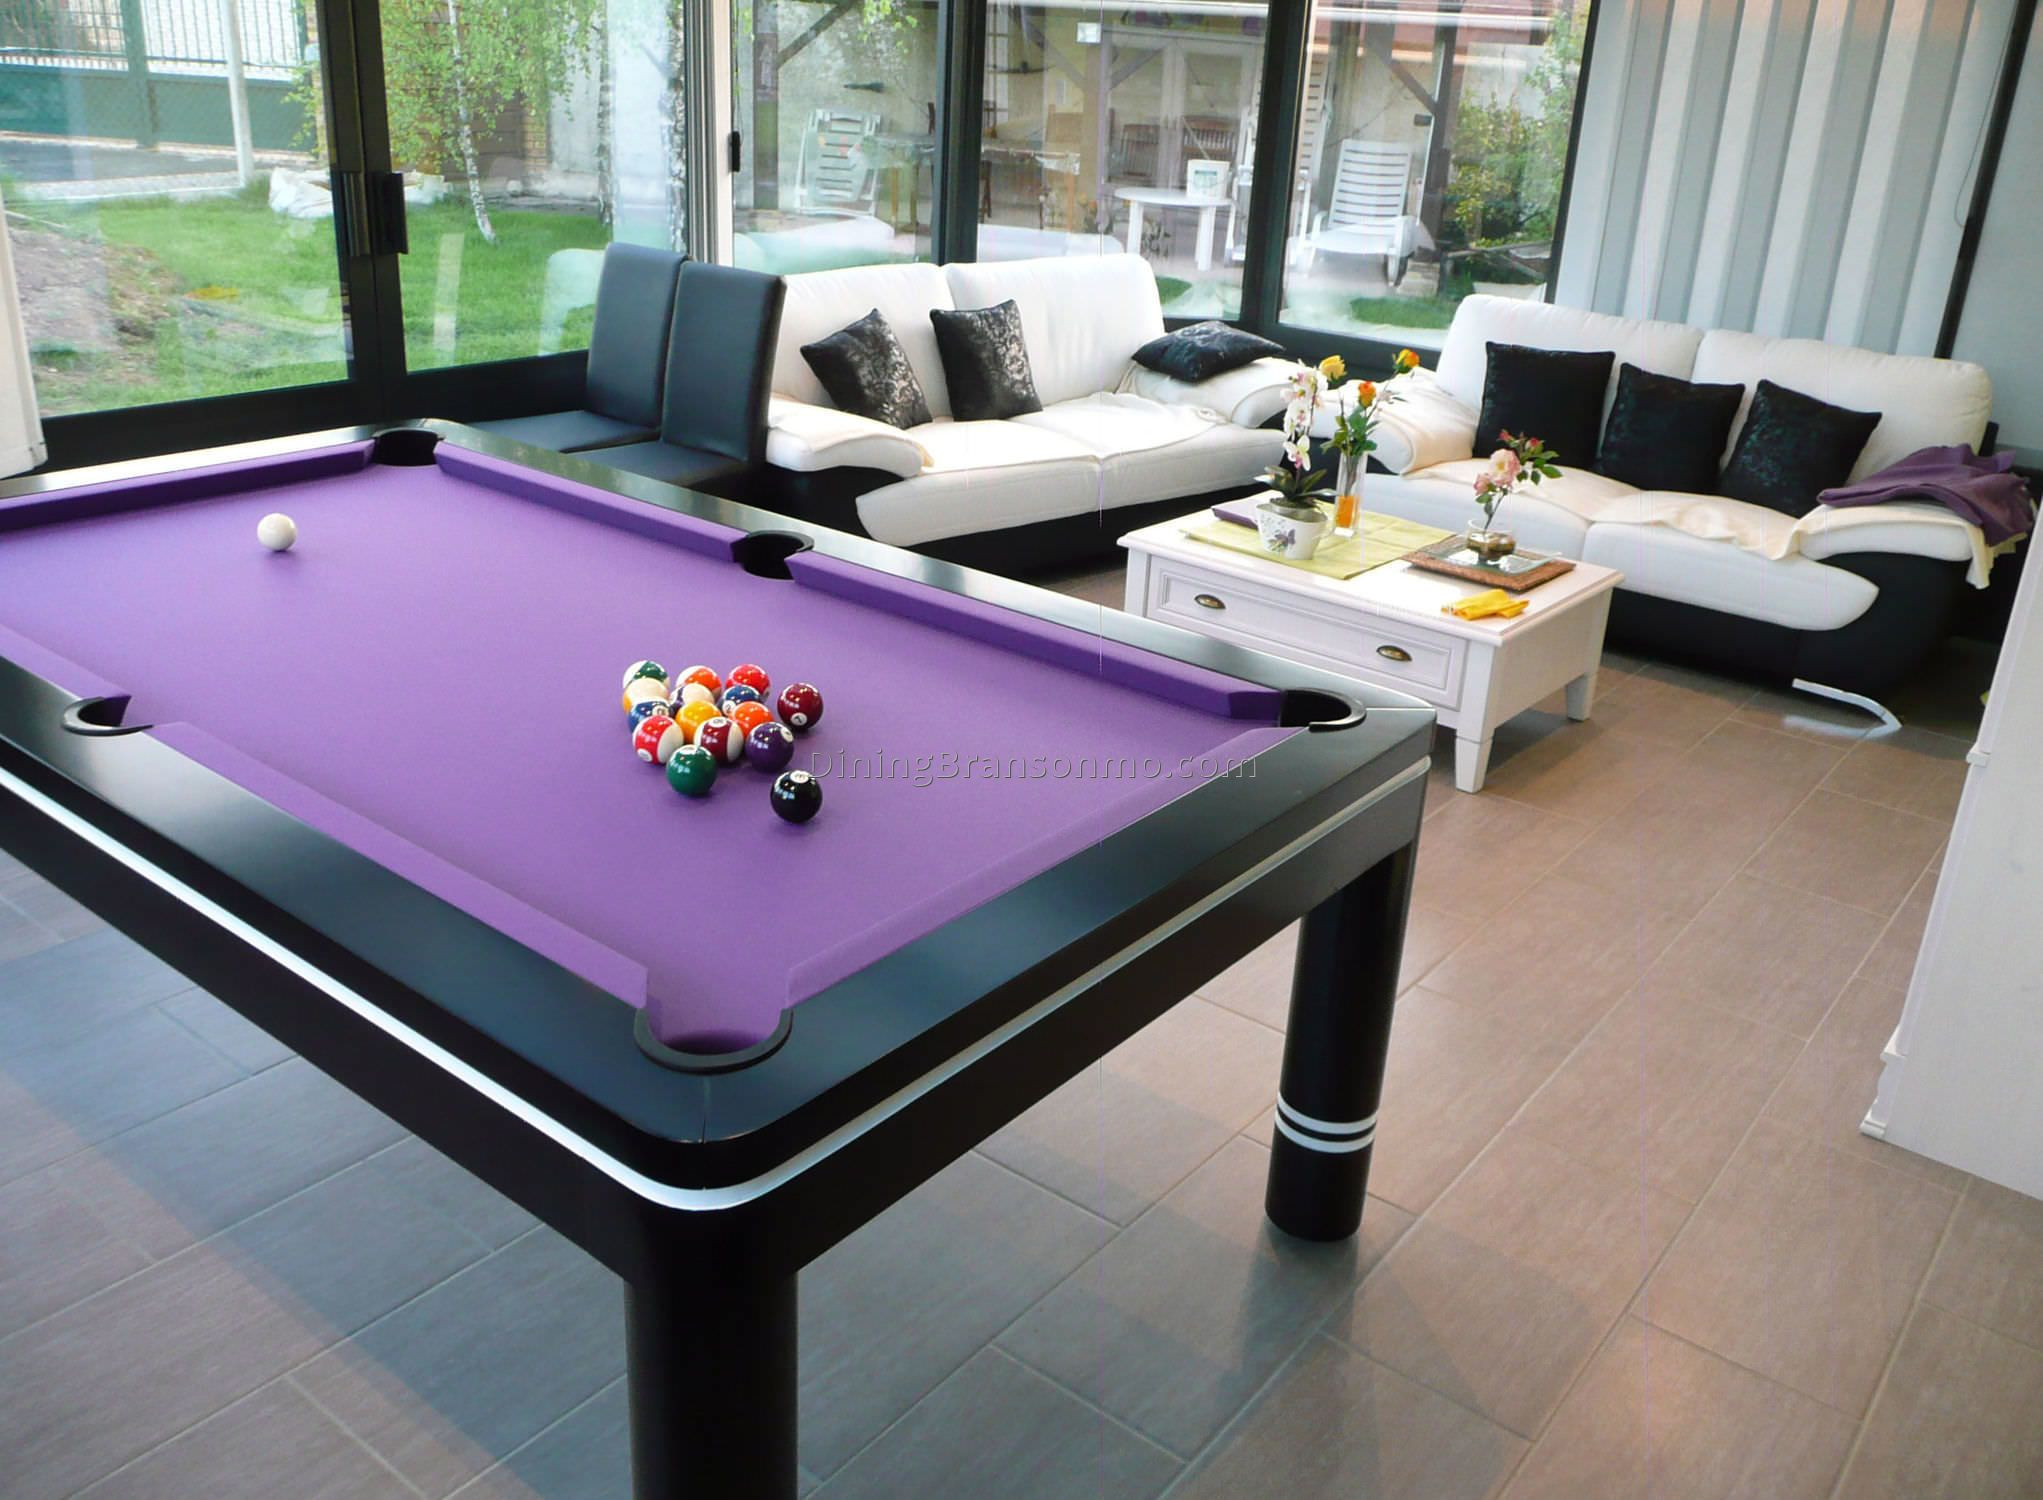 Rectangle Living Room Dining Pool Table Image Best Elegant Glass Inspiration Pool Table Living Room Design Inspiration Design